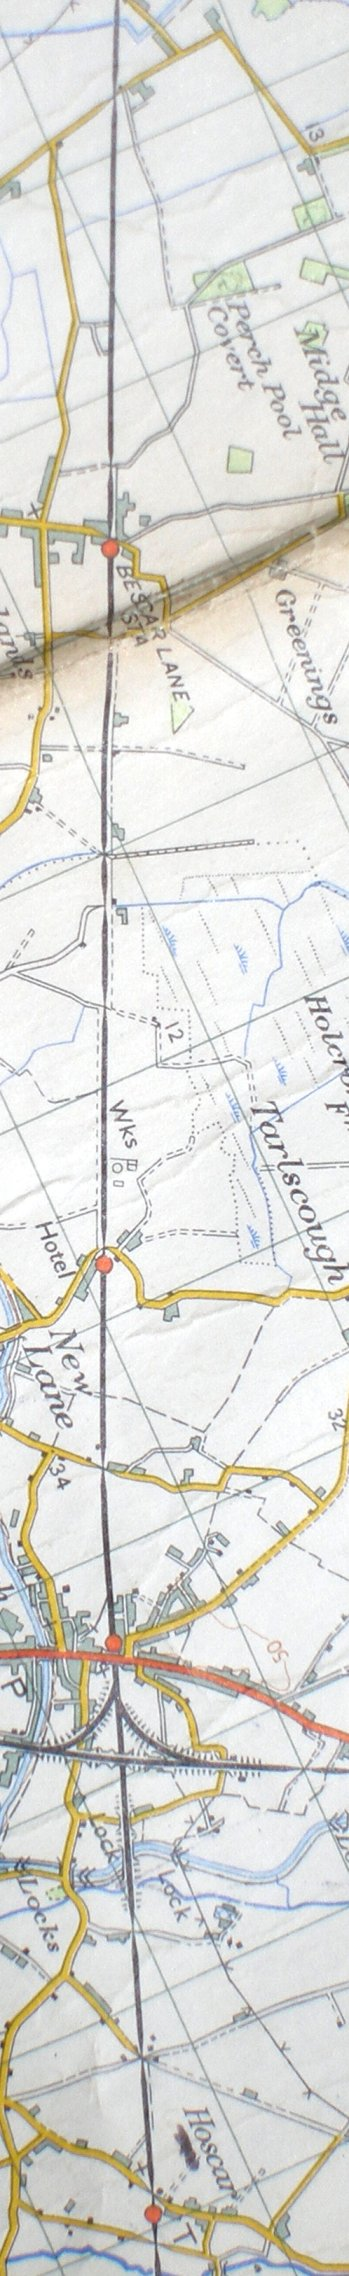 Section from the Ordnance Survey map showing L&YR railway line from Bescar Lane to Burscough Bridge Junction